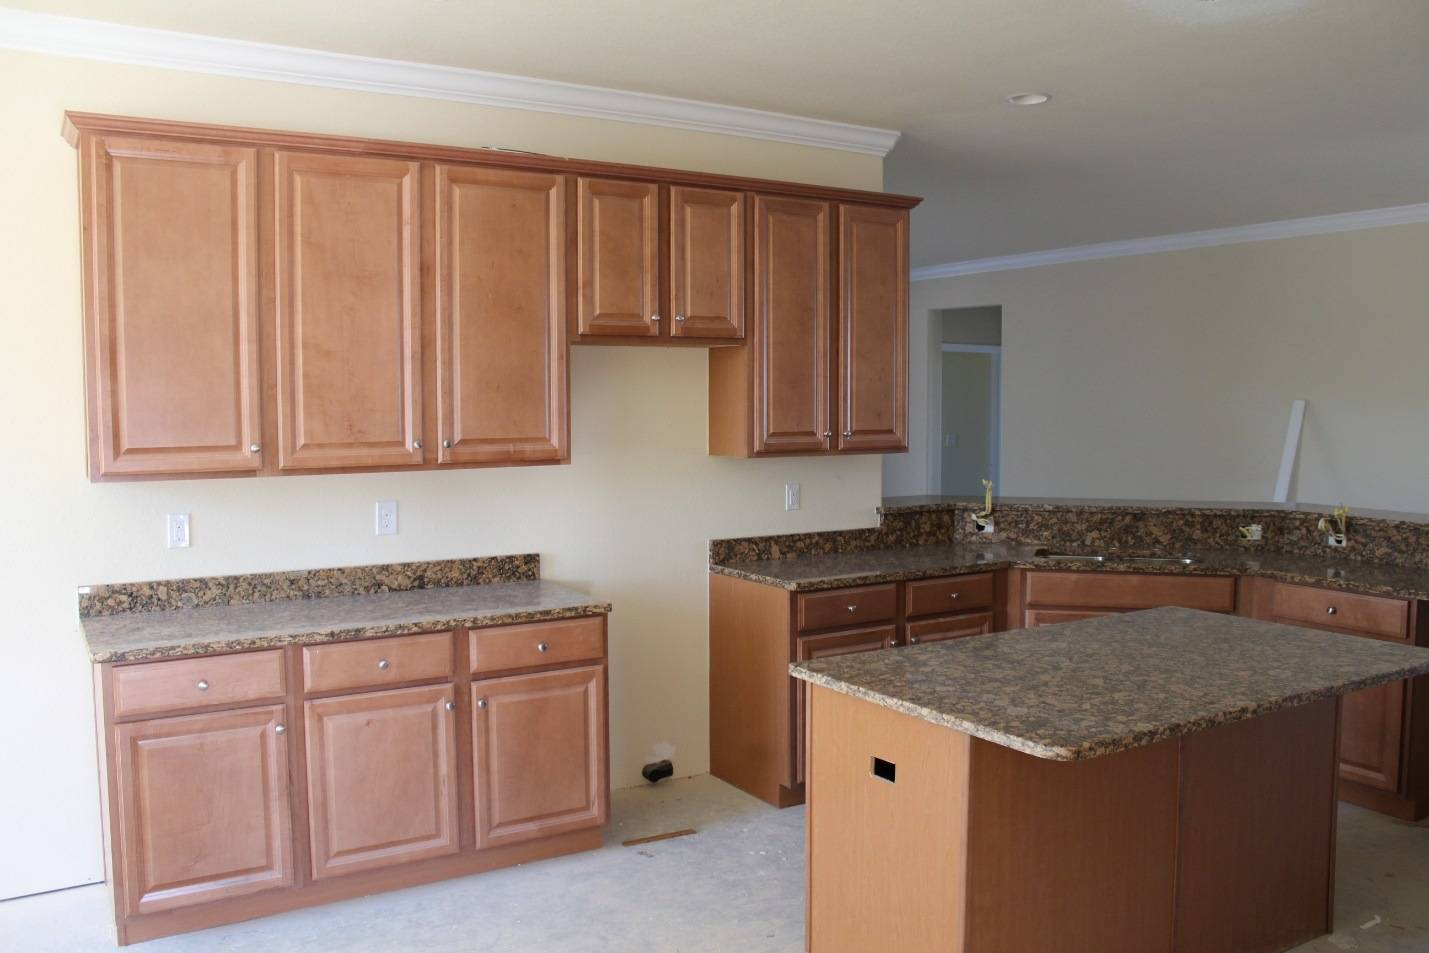 Installing Kitchen Cabinets Over Floating Flooring Install Cabinets Before Or After Flooring? | America's